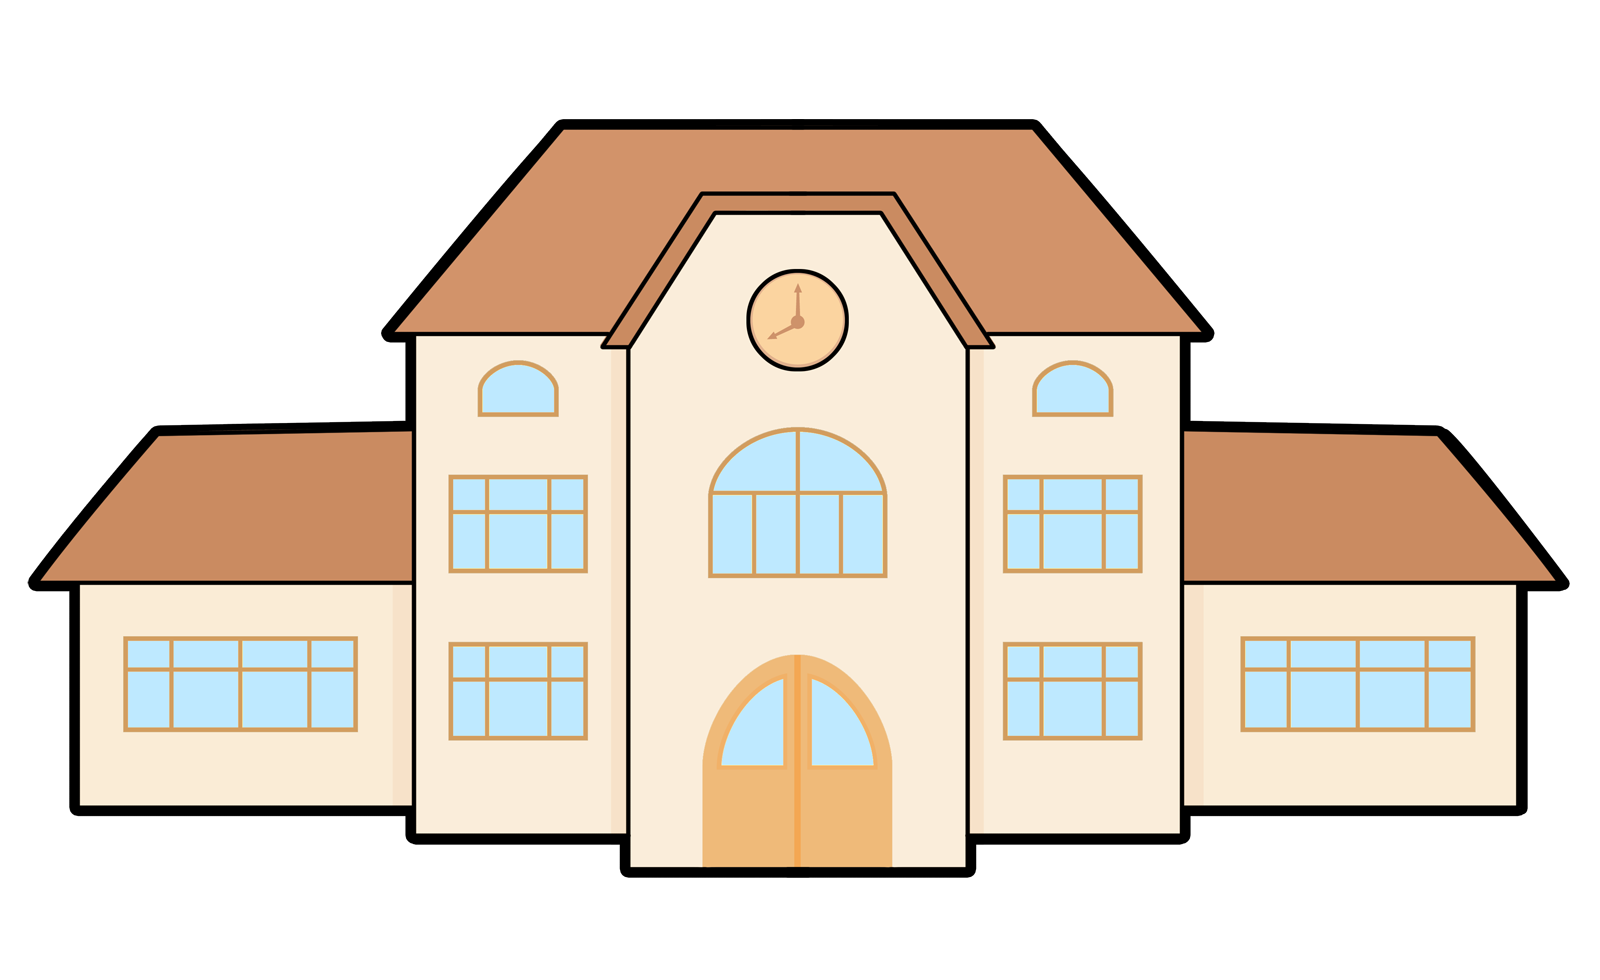 Free Building Clipart, Download Free Clip Art, Free Clip Art.